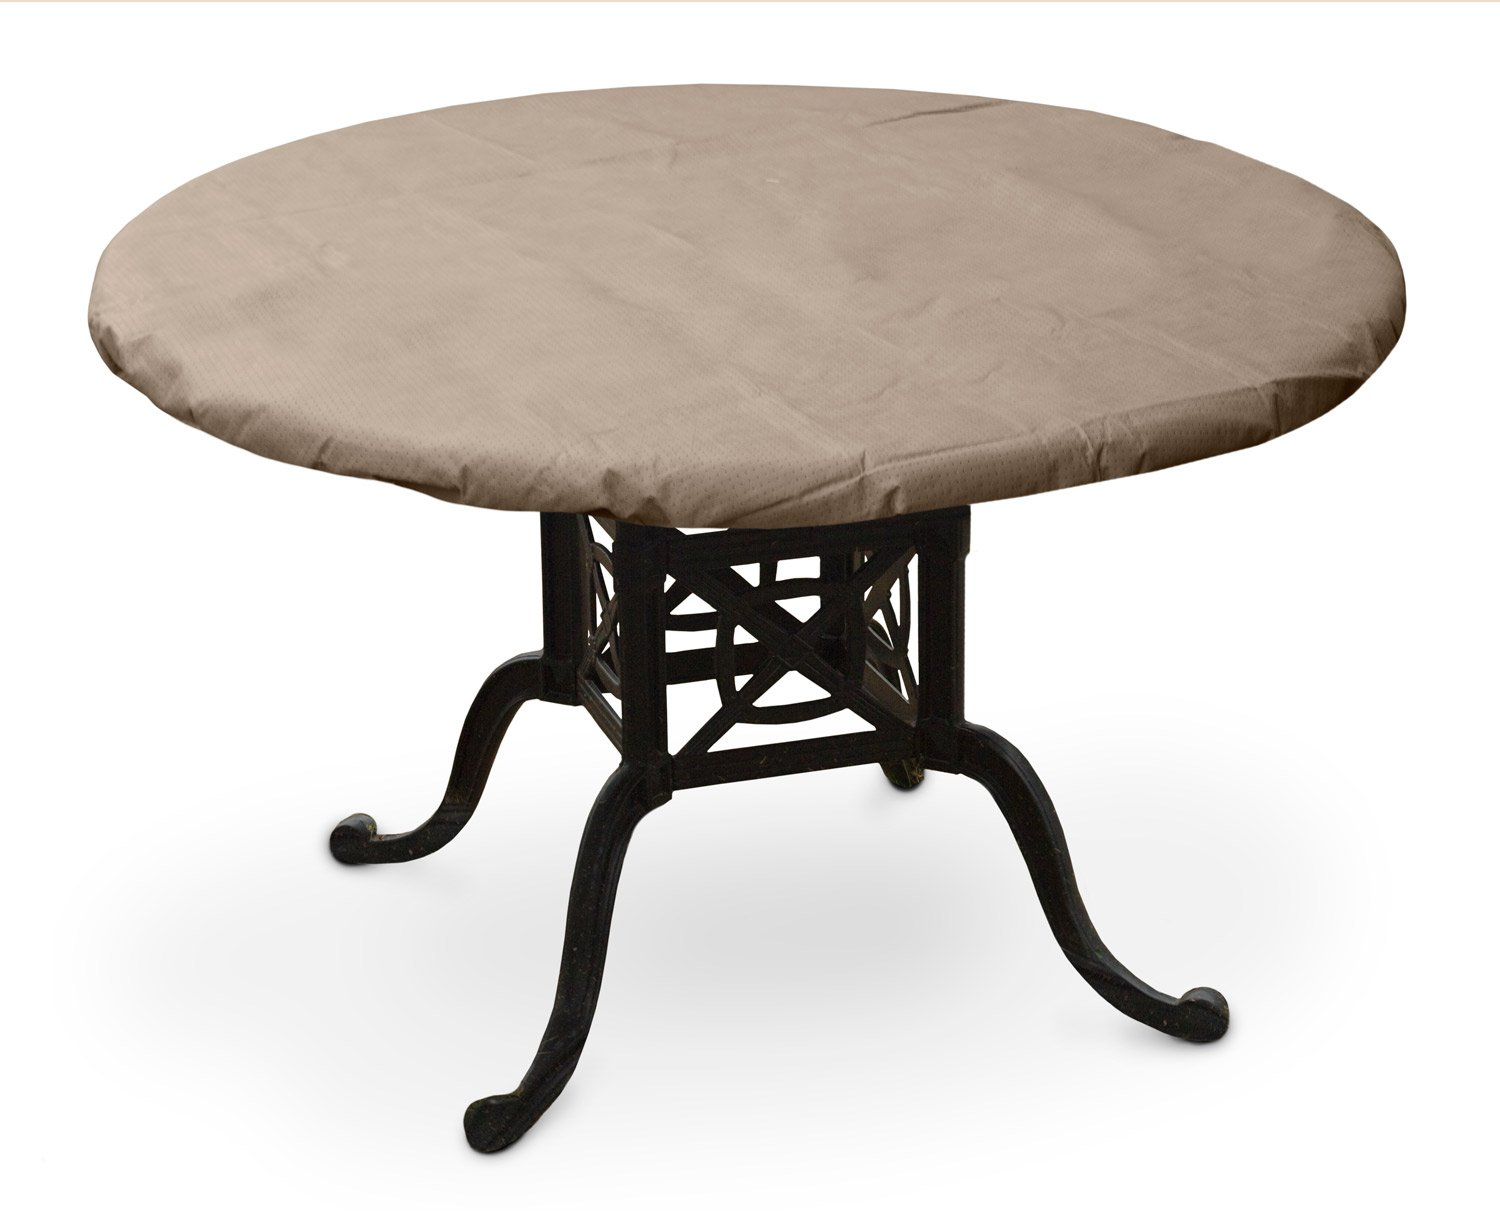 Outdoor round table top 36 - Amazon Com Koverroos Iii 37360 32 Inch Round Table Top Cover 36 Inch Diameter Taupe Patio Table Covers Garden Outdoor